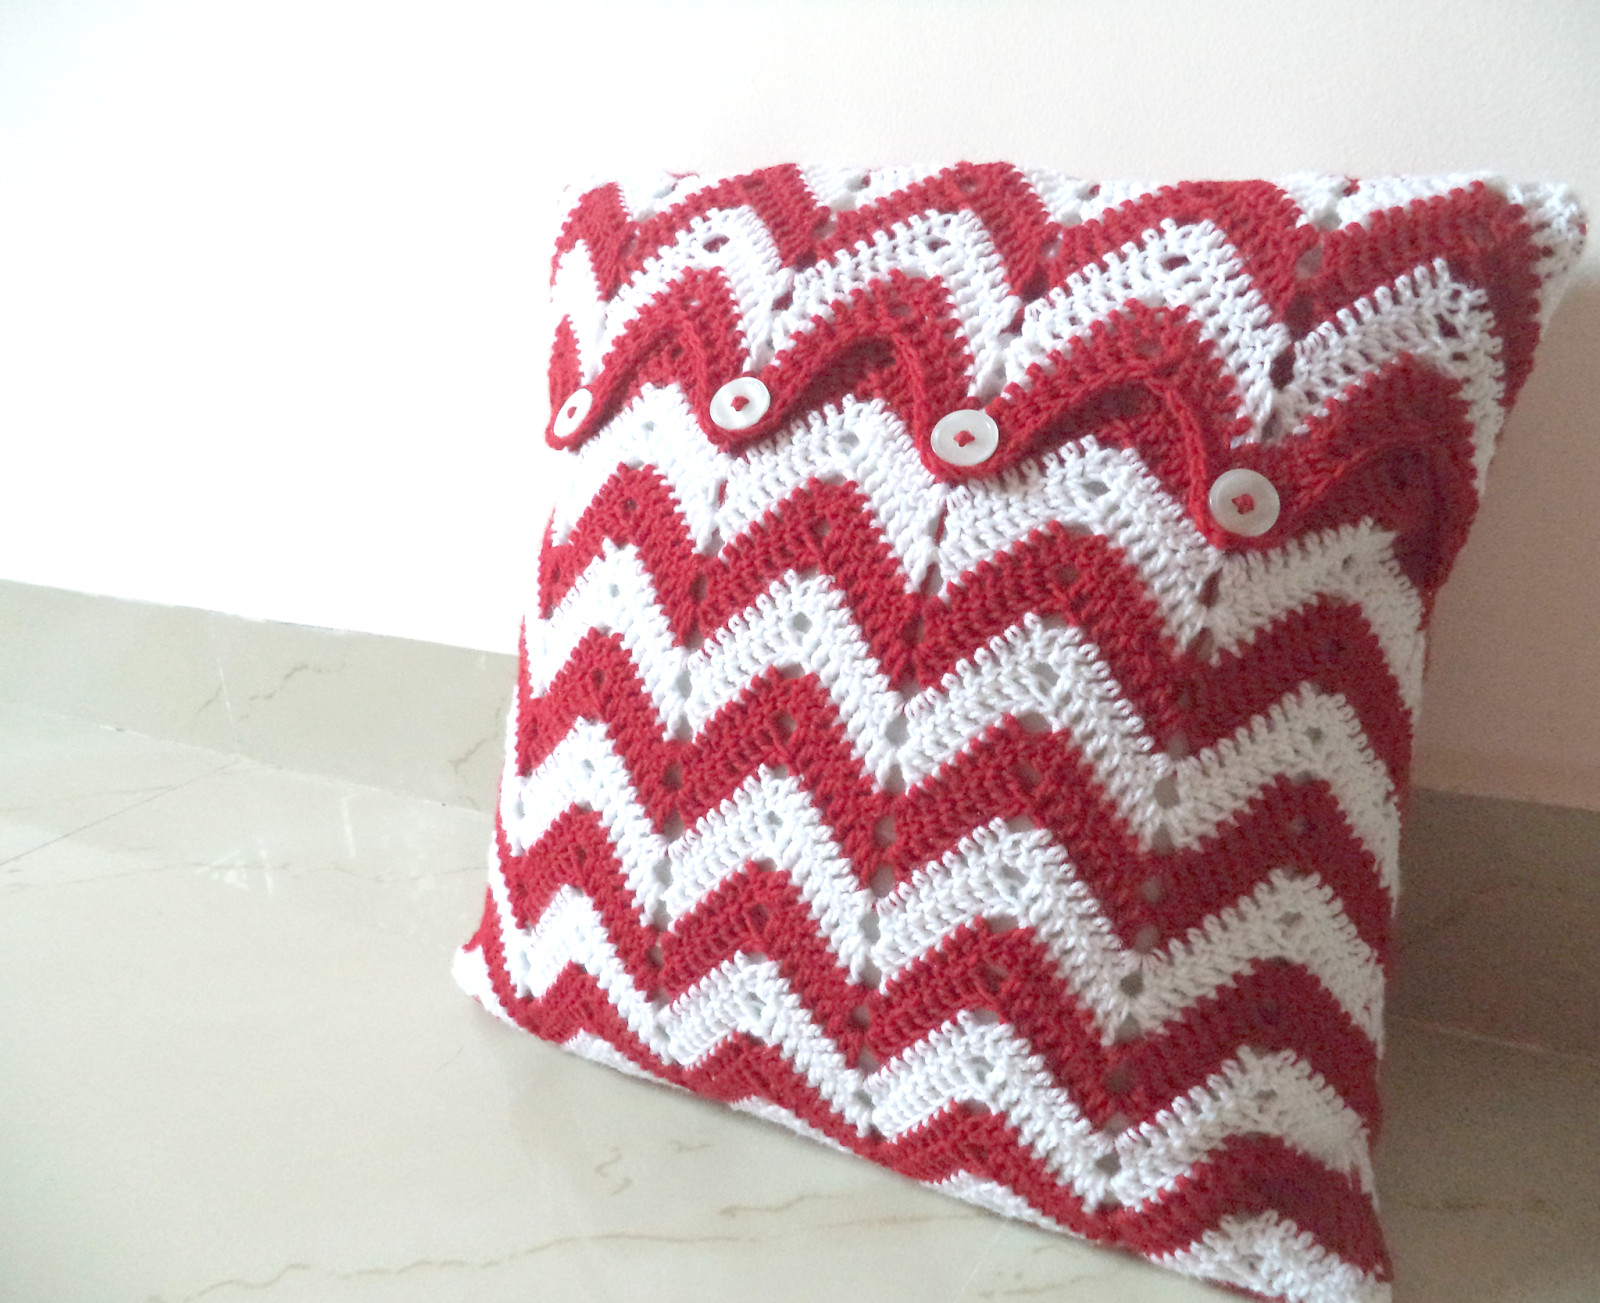 Crochet Pillow Cover Elegant Made In Craftadise Of Amazing 50 Pics Crochet Pillow Cover